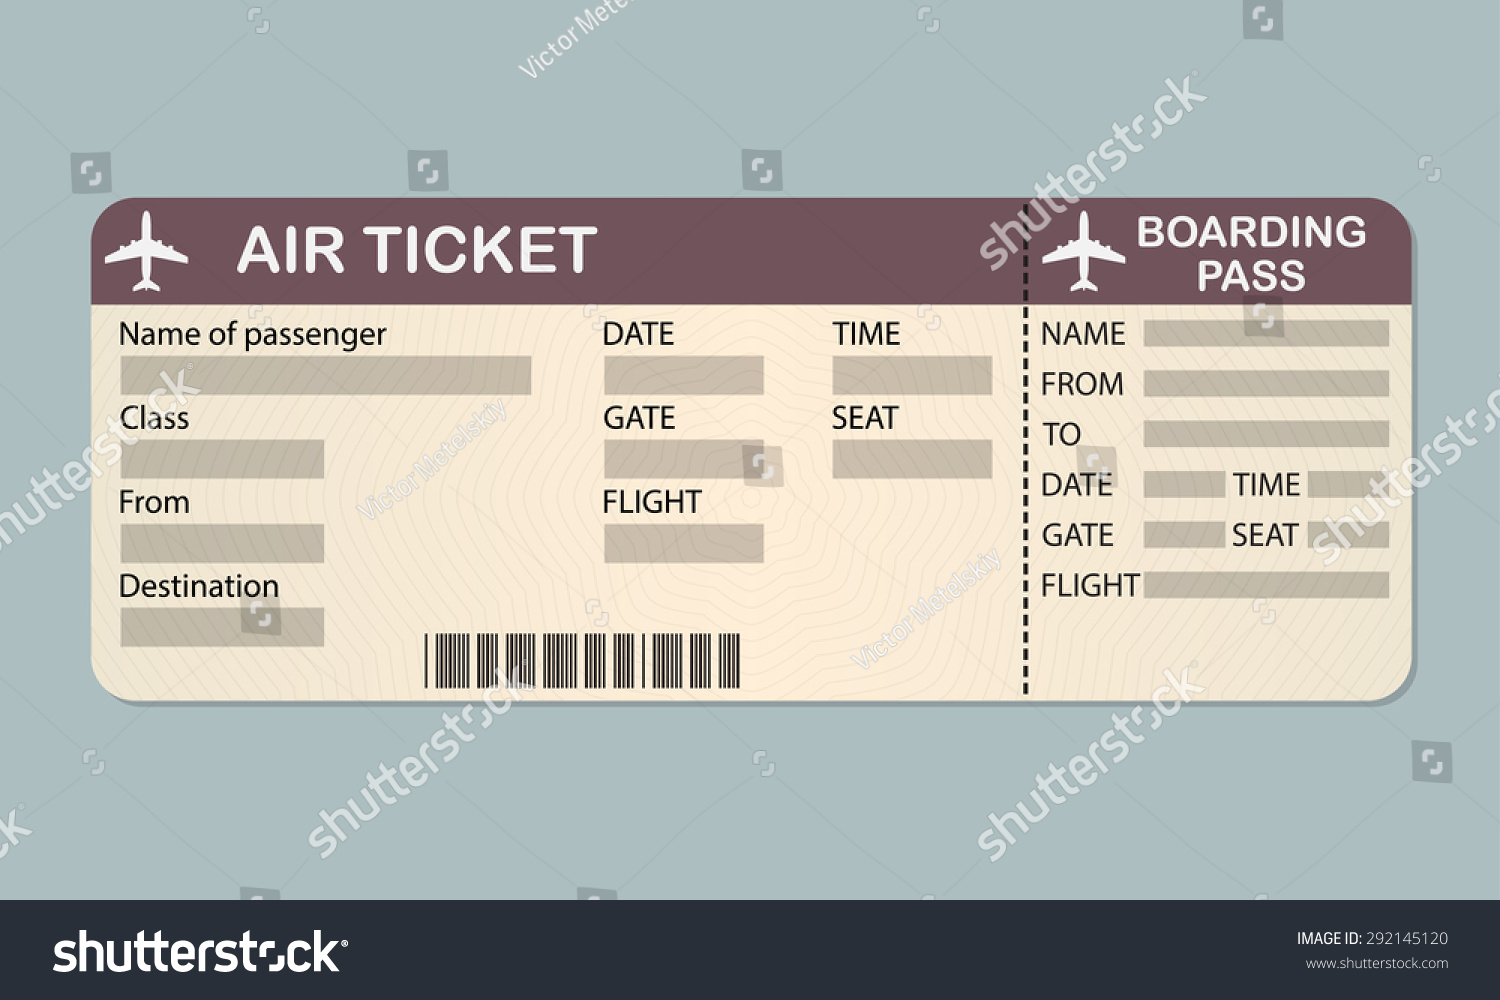 Airline Boarding Pass Ticket Template Detailed Vector – Plane Ticket Template